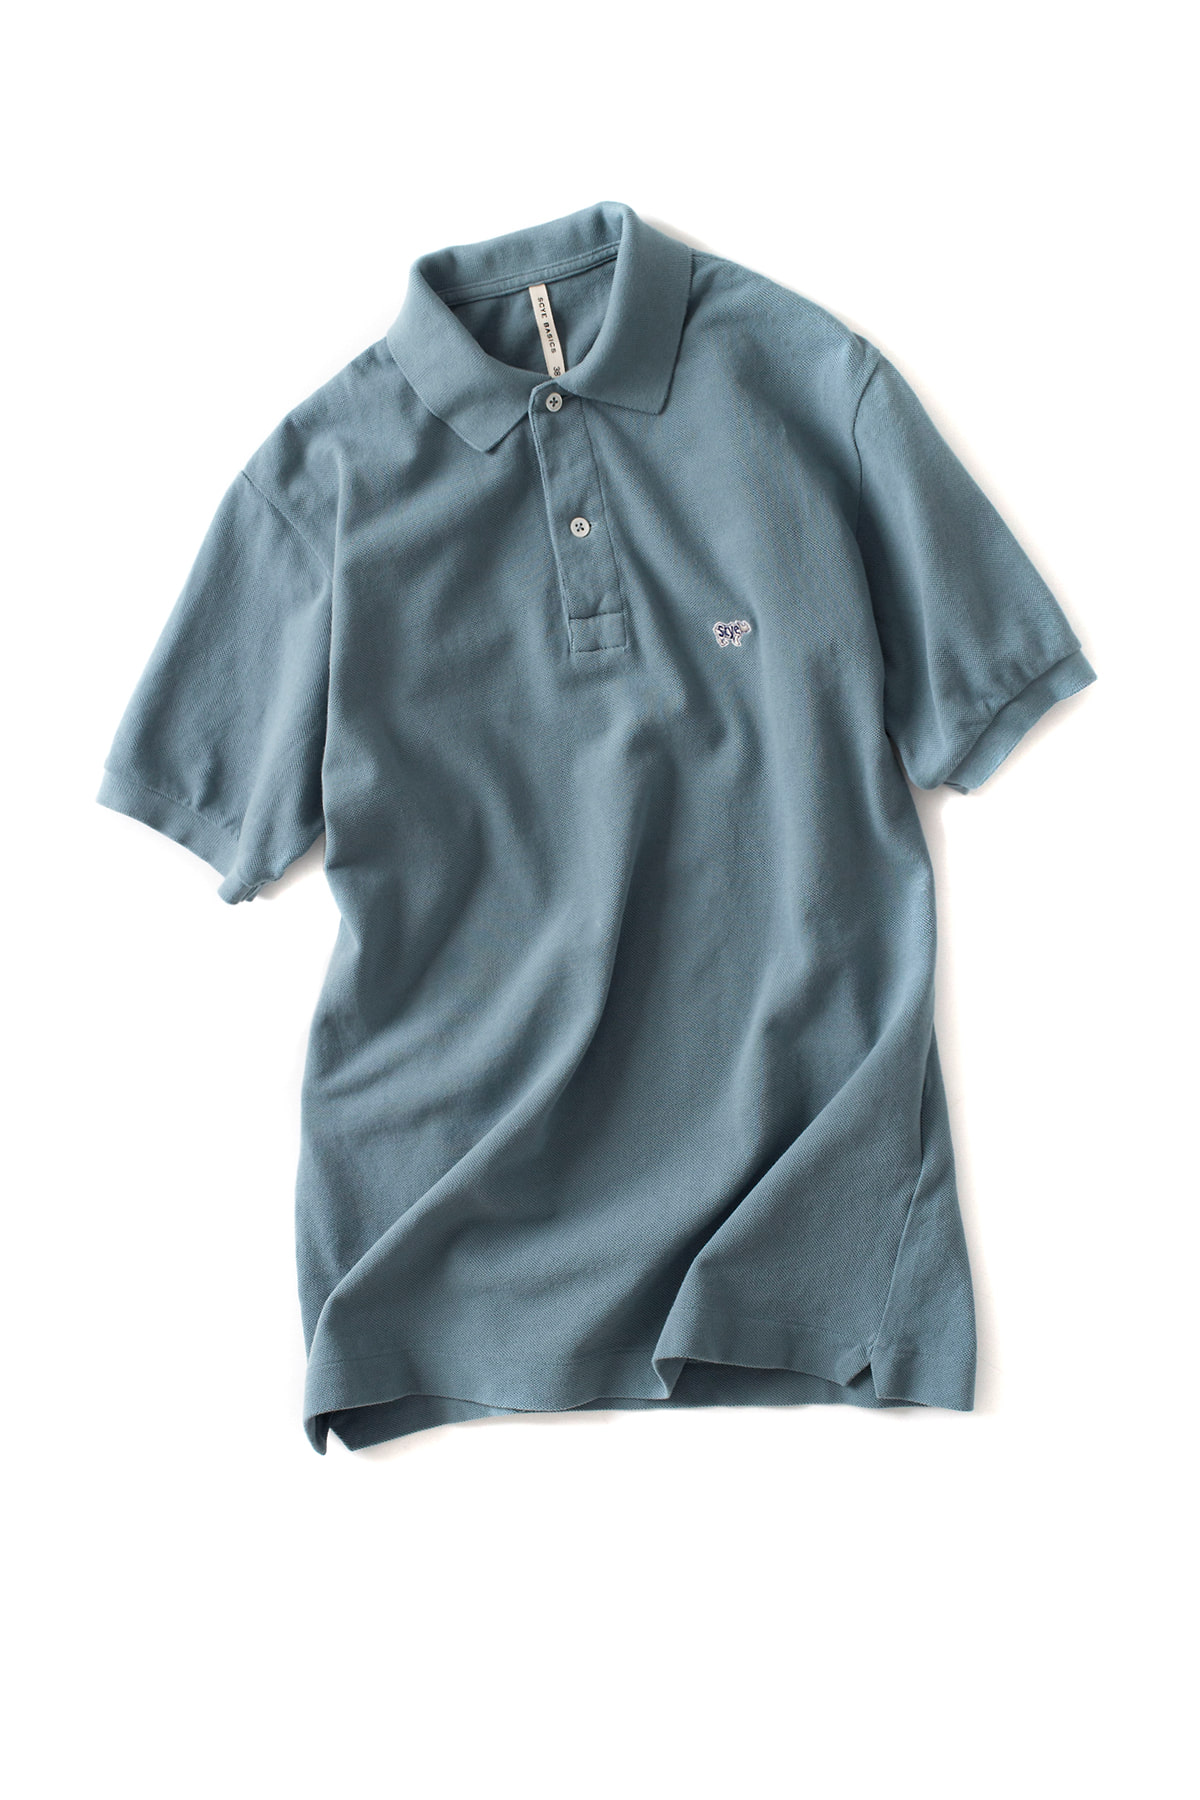 Scye Basics : Cotton Pique Polo Shirt (Surf Blue)